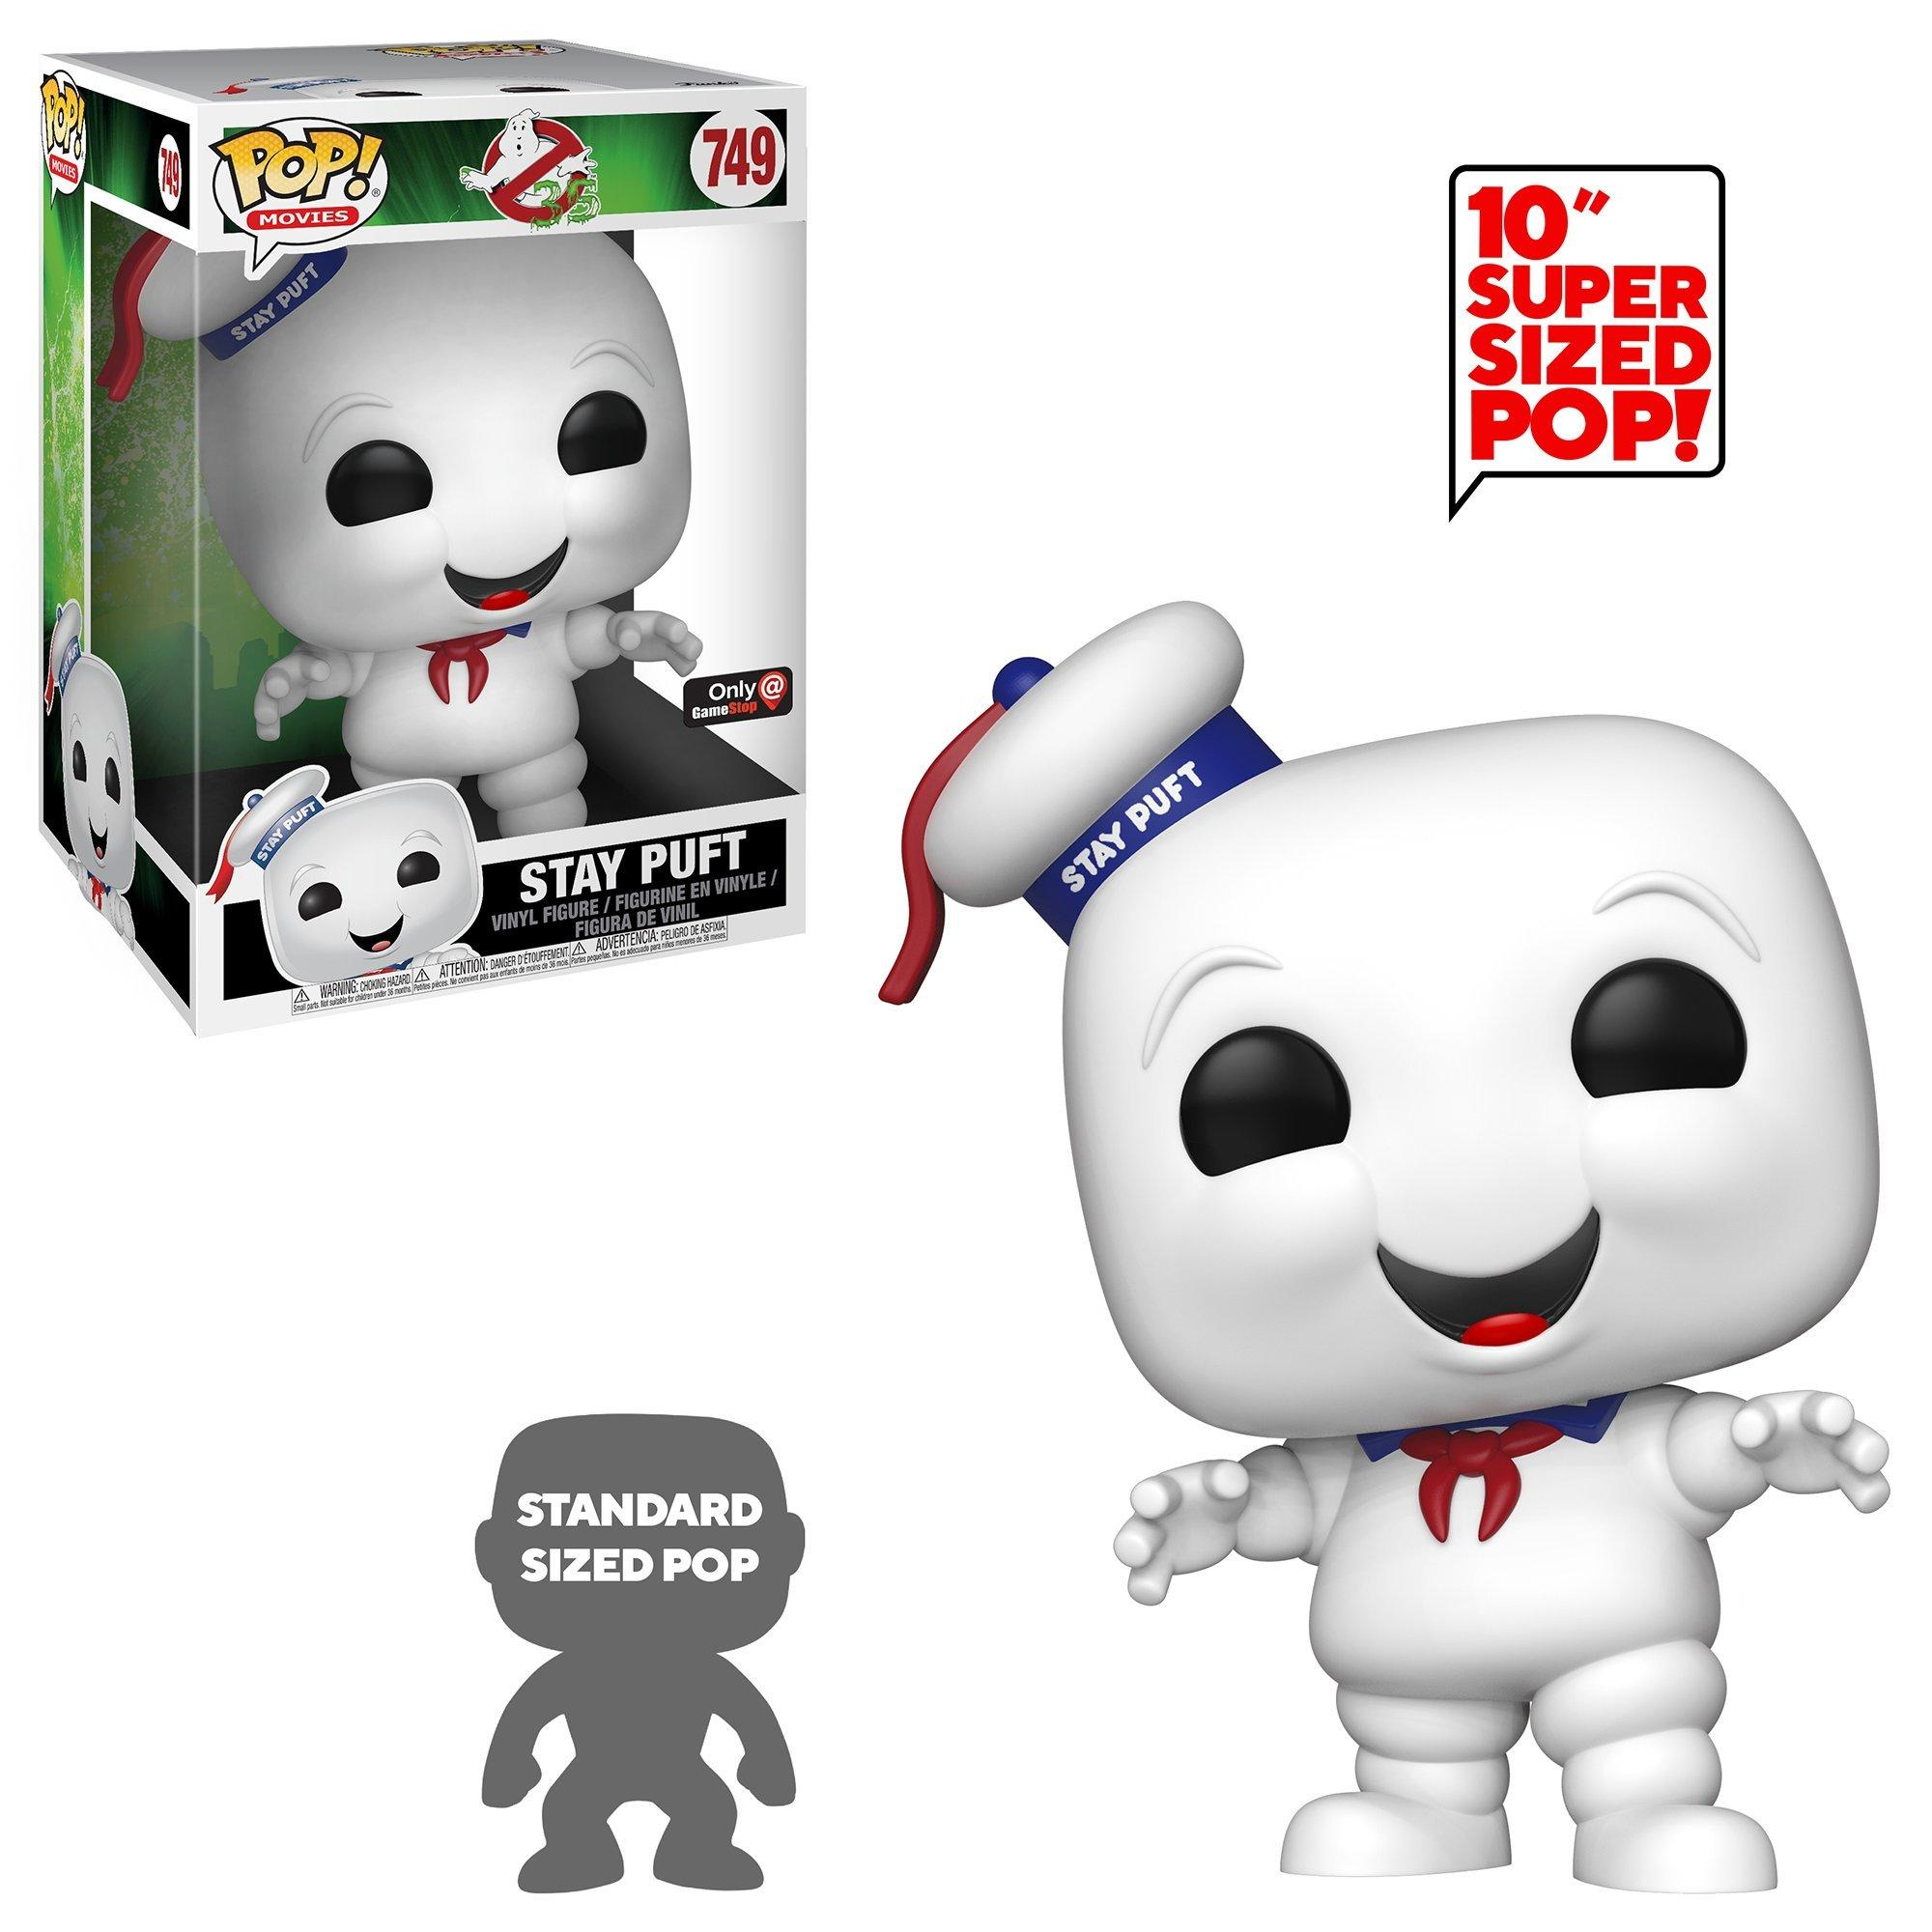 Ghostbusters With The Scary Stay Puft Marshmallow Man Coloring ... | 2000x2000